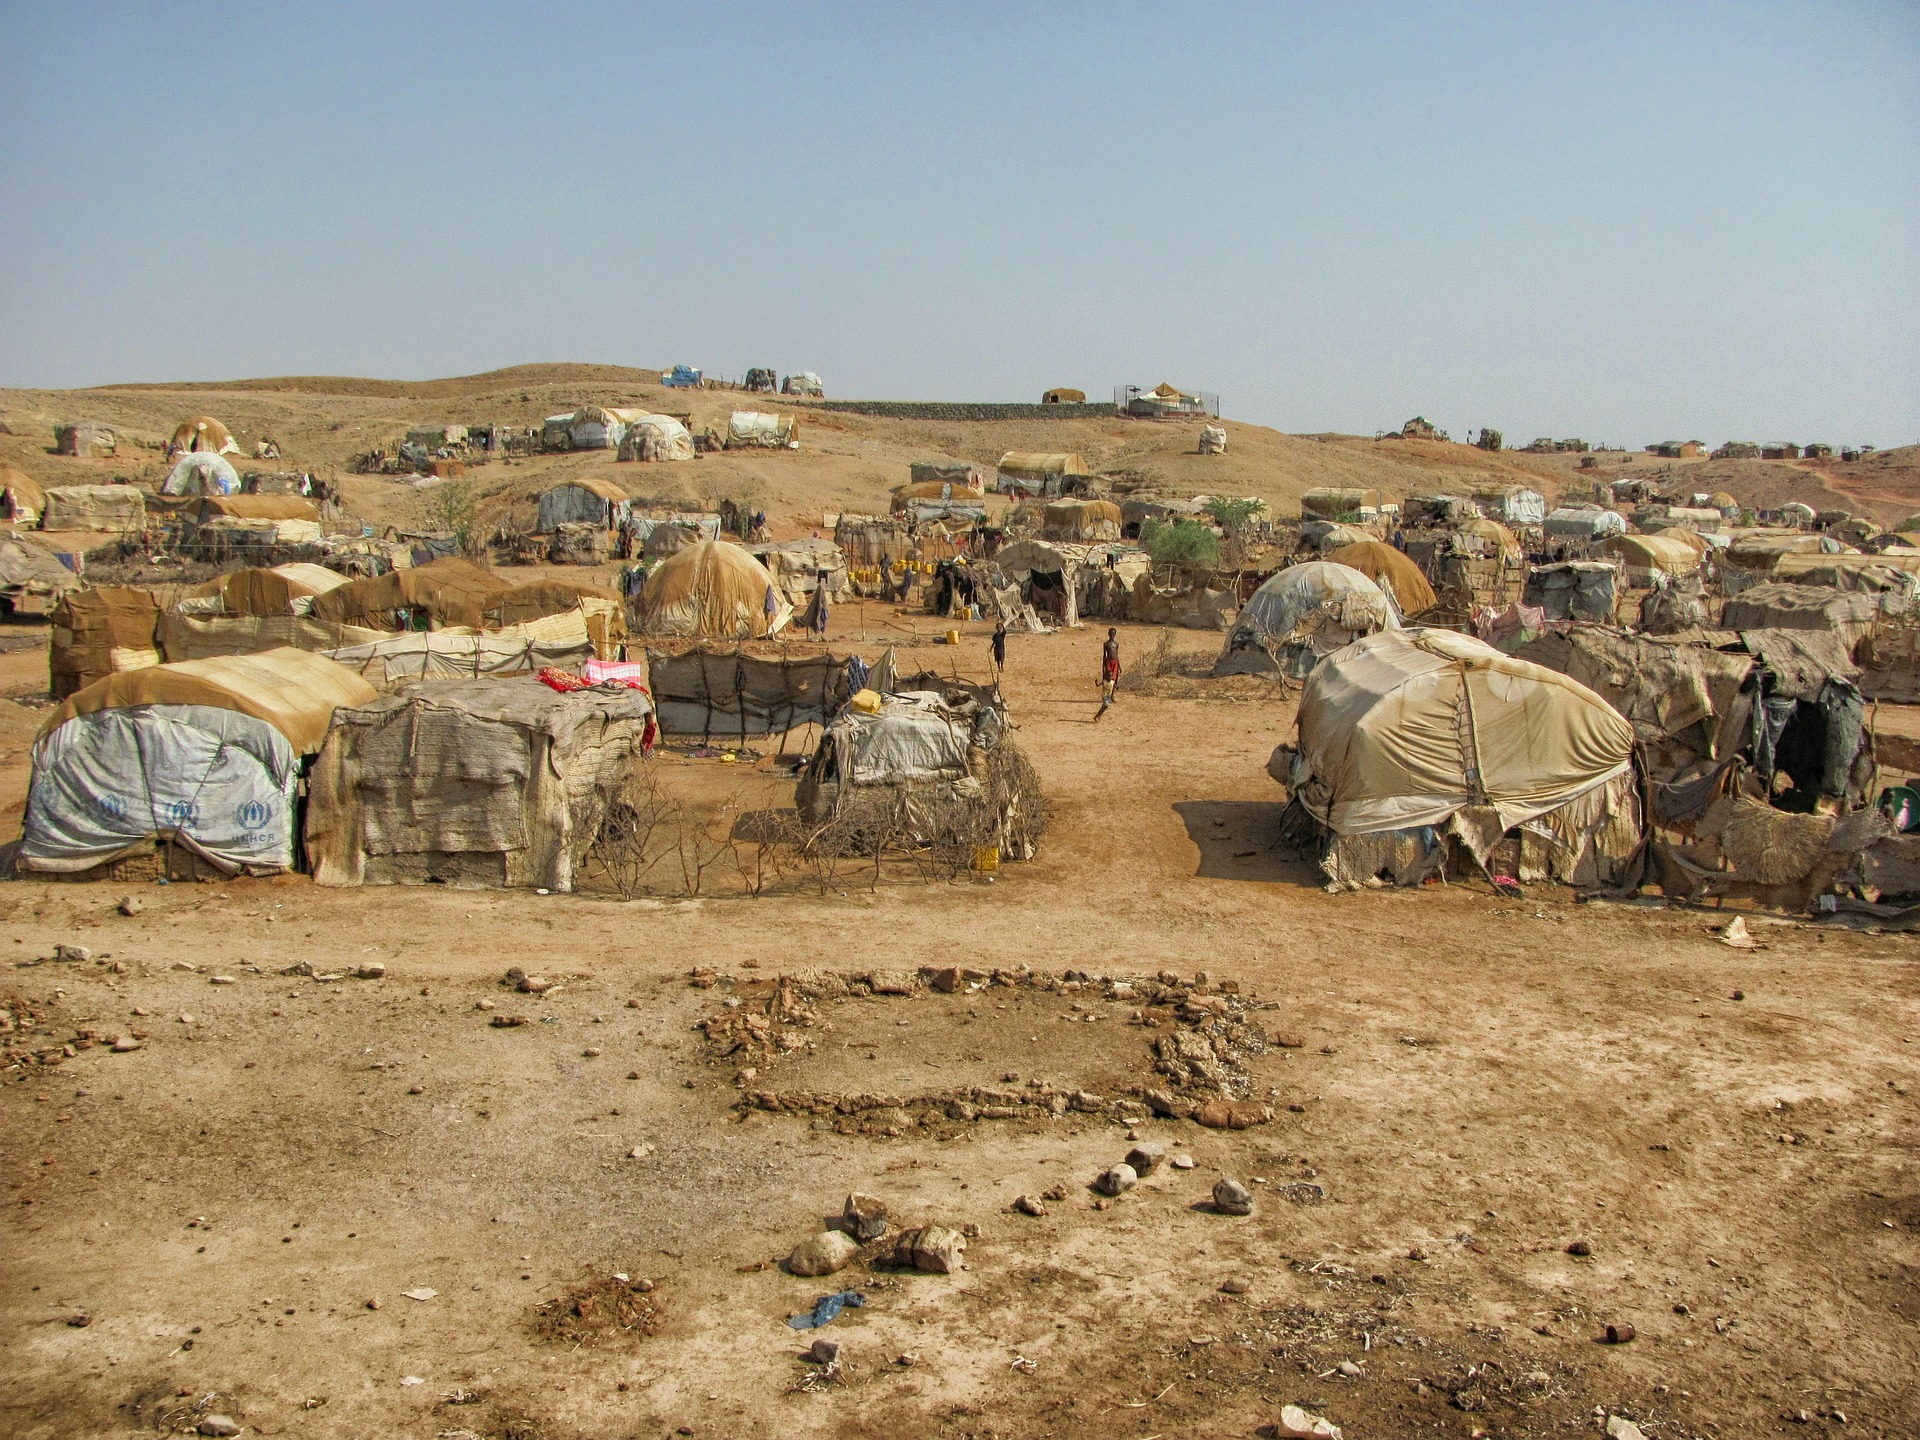 Environmental Disruption from Mass Wartime Refugee Movements - Environment and Military